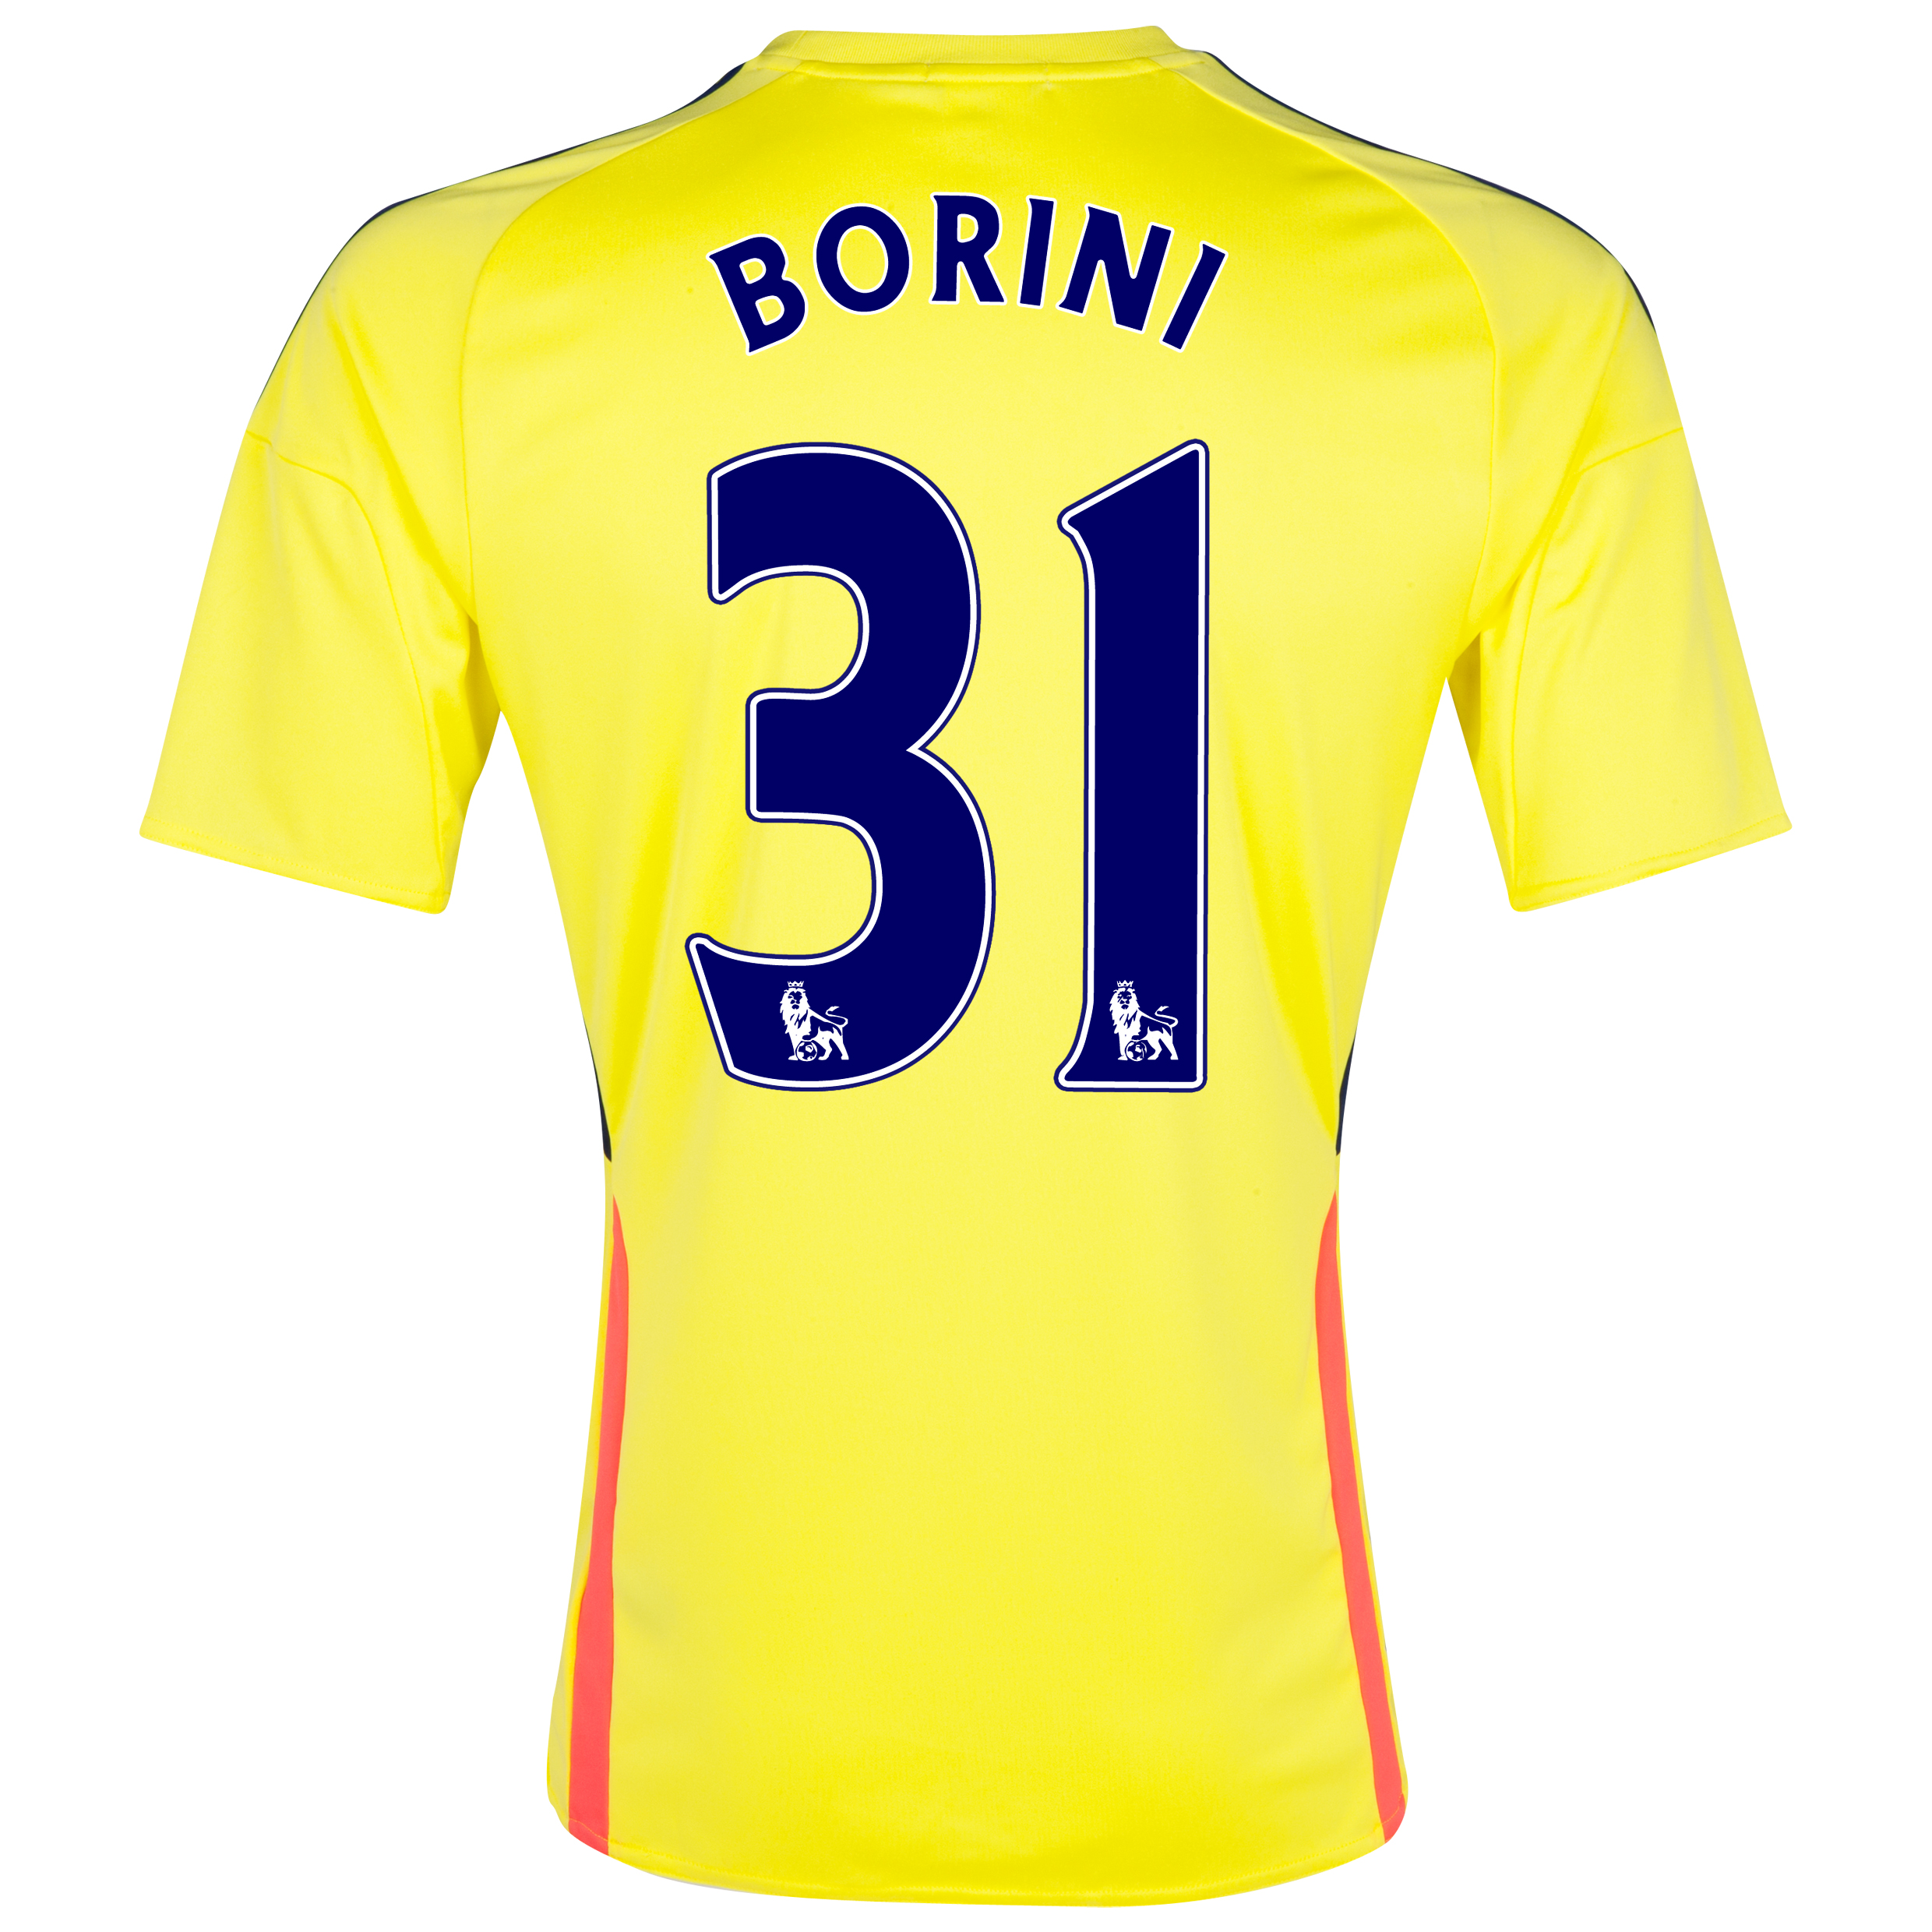 Sunderland Away Shirt 2013/14 with Borini 31 printing